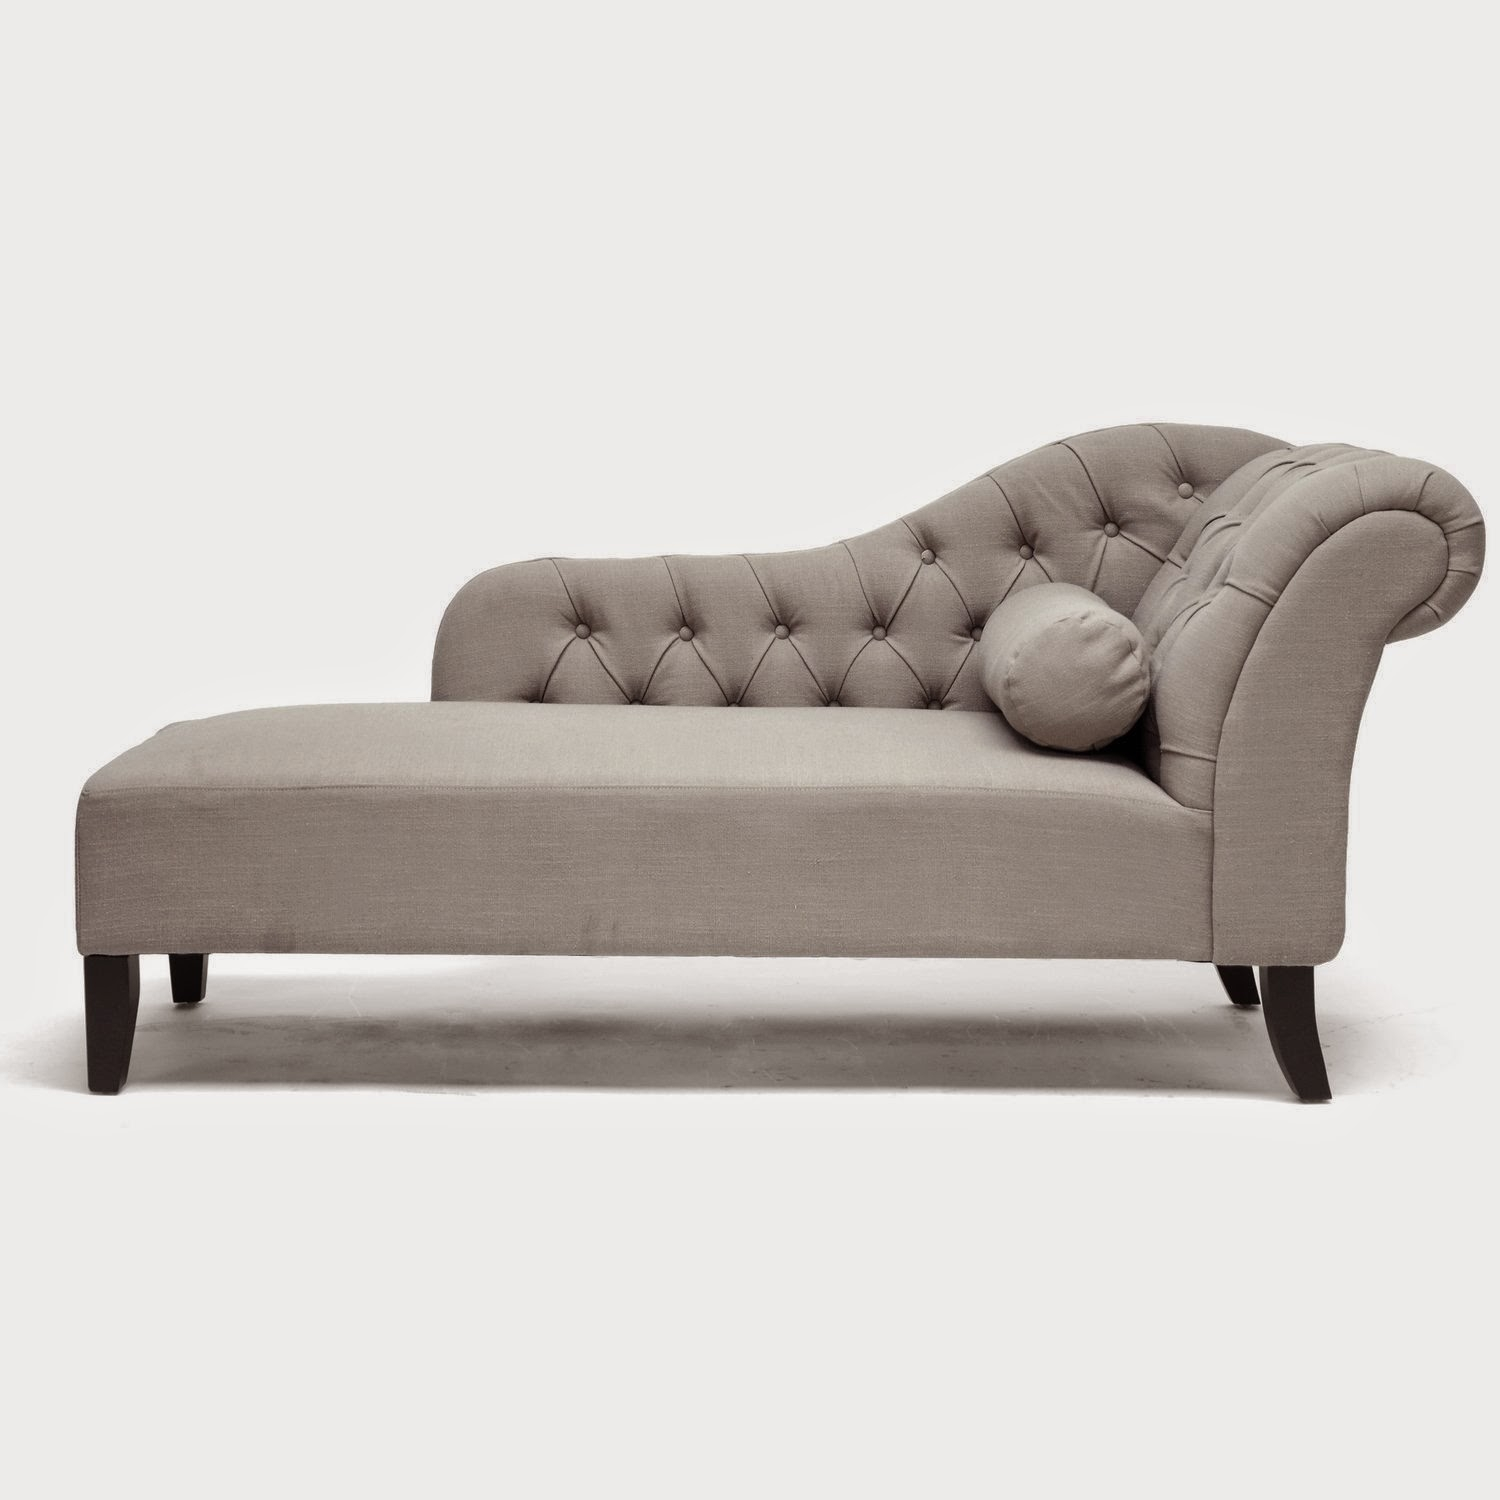 Baxton studio aphrodite tufted putty gray linen modern chaise lounge  sc 1 st  Foter & Fabric Chaise Lounge Chairs - Foter